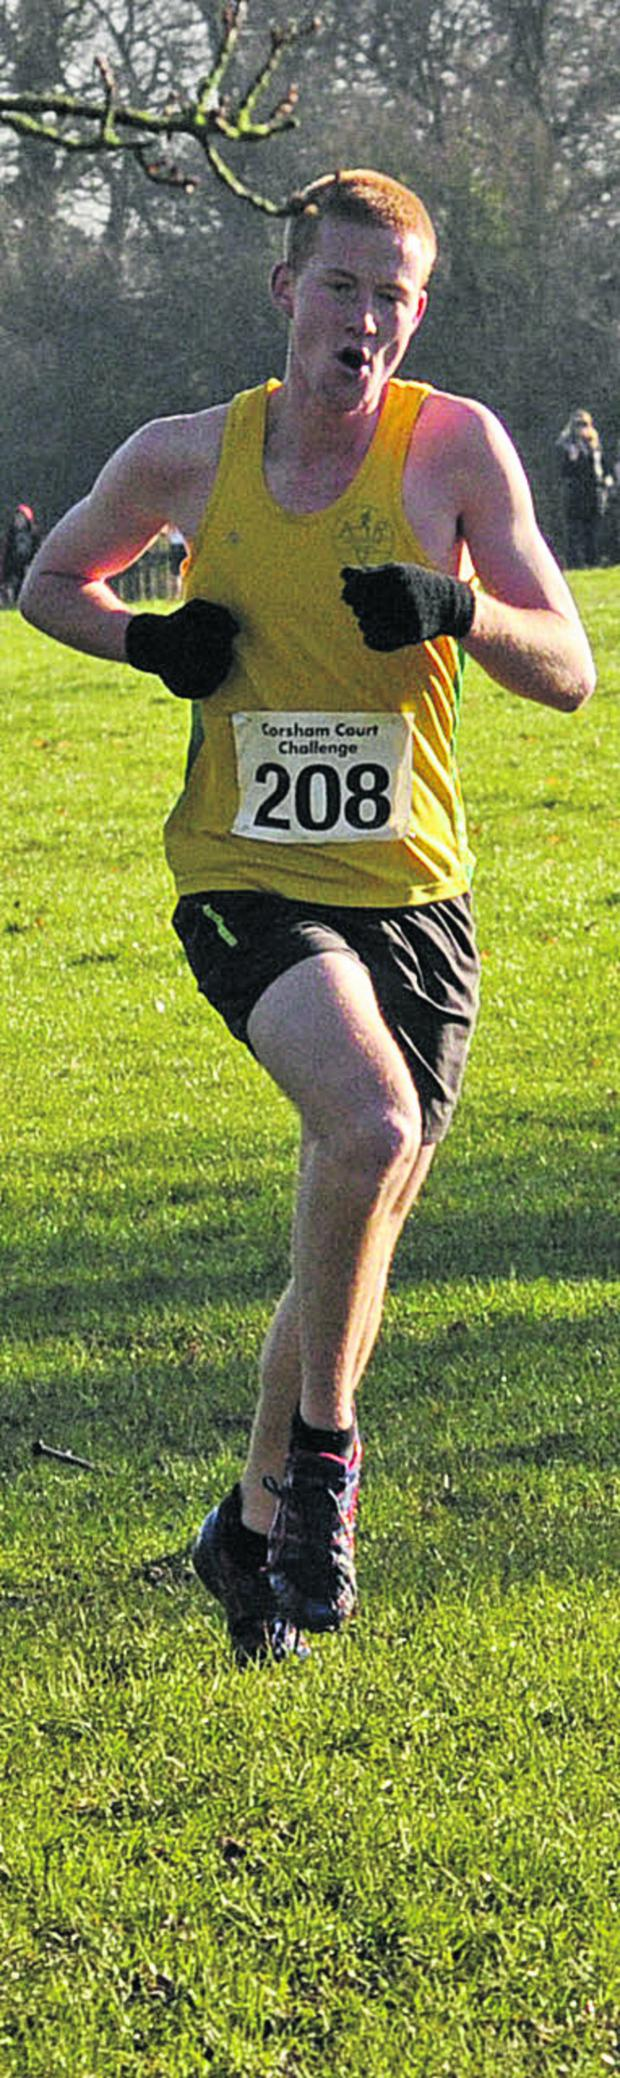 Wiltshire Times: Michael Towler, of Avon Valley Runners, is nominated for male athlete of the year